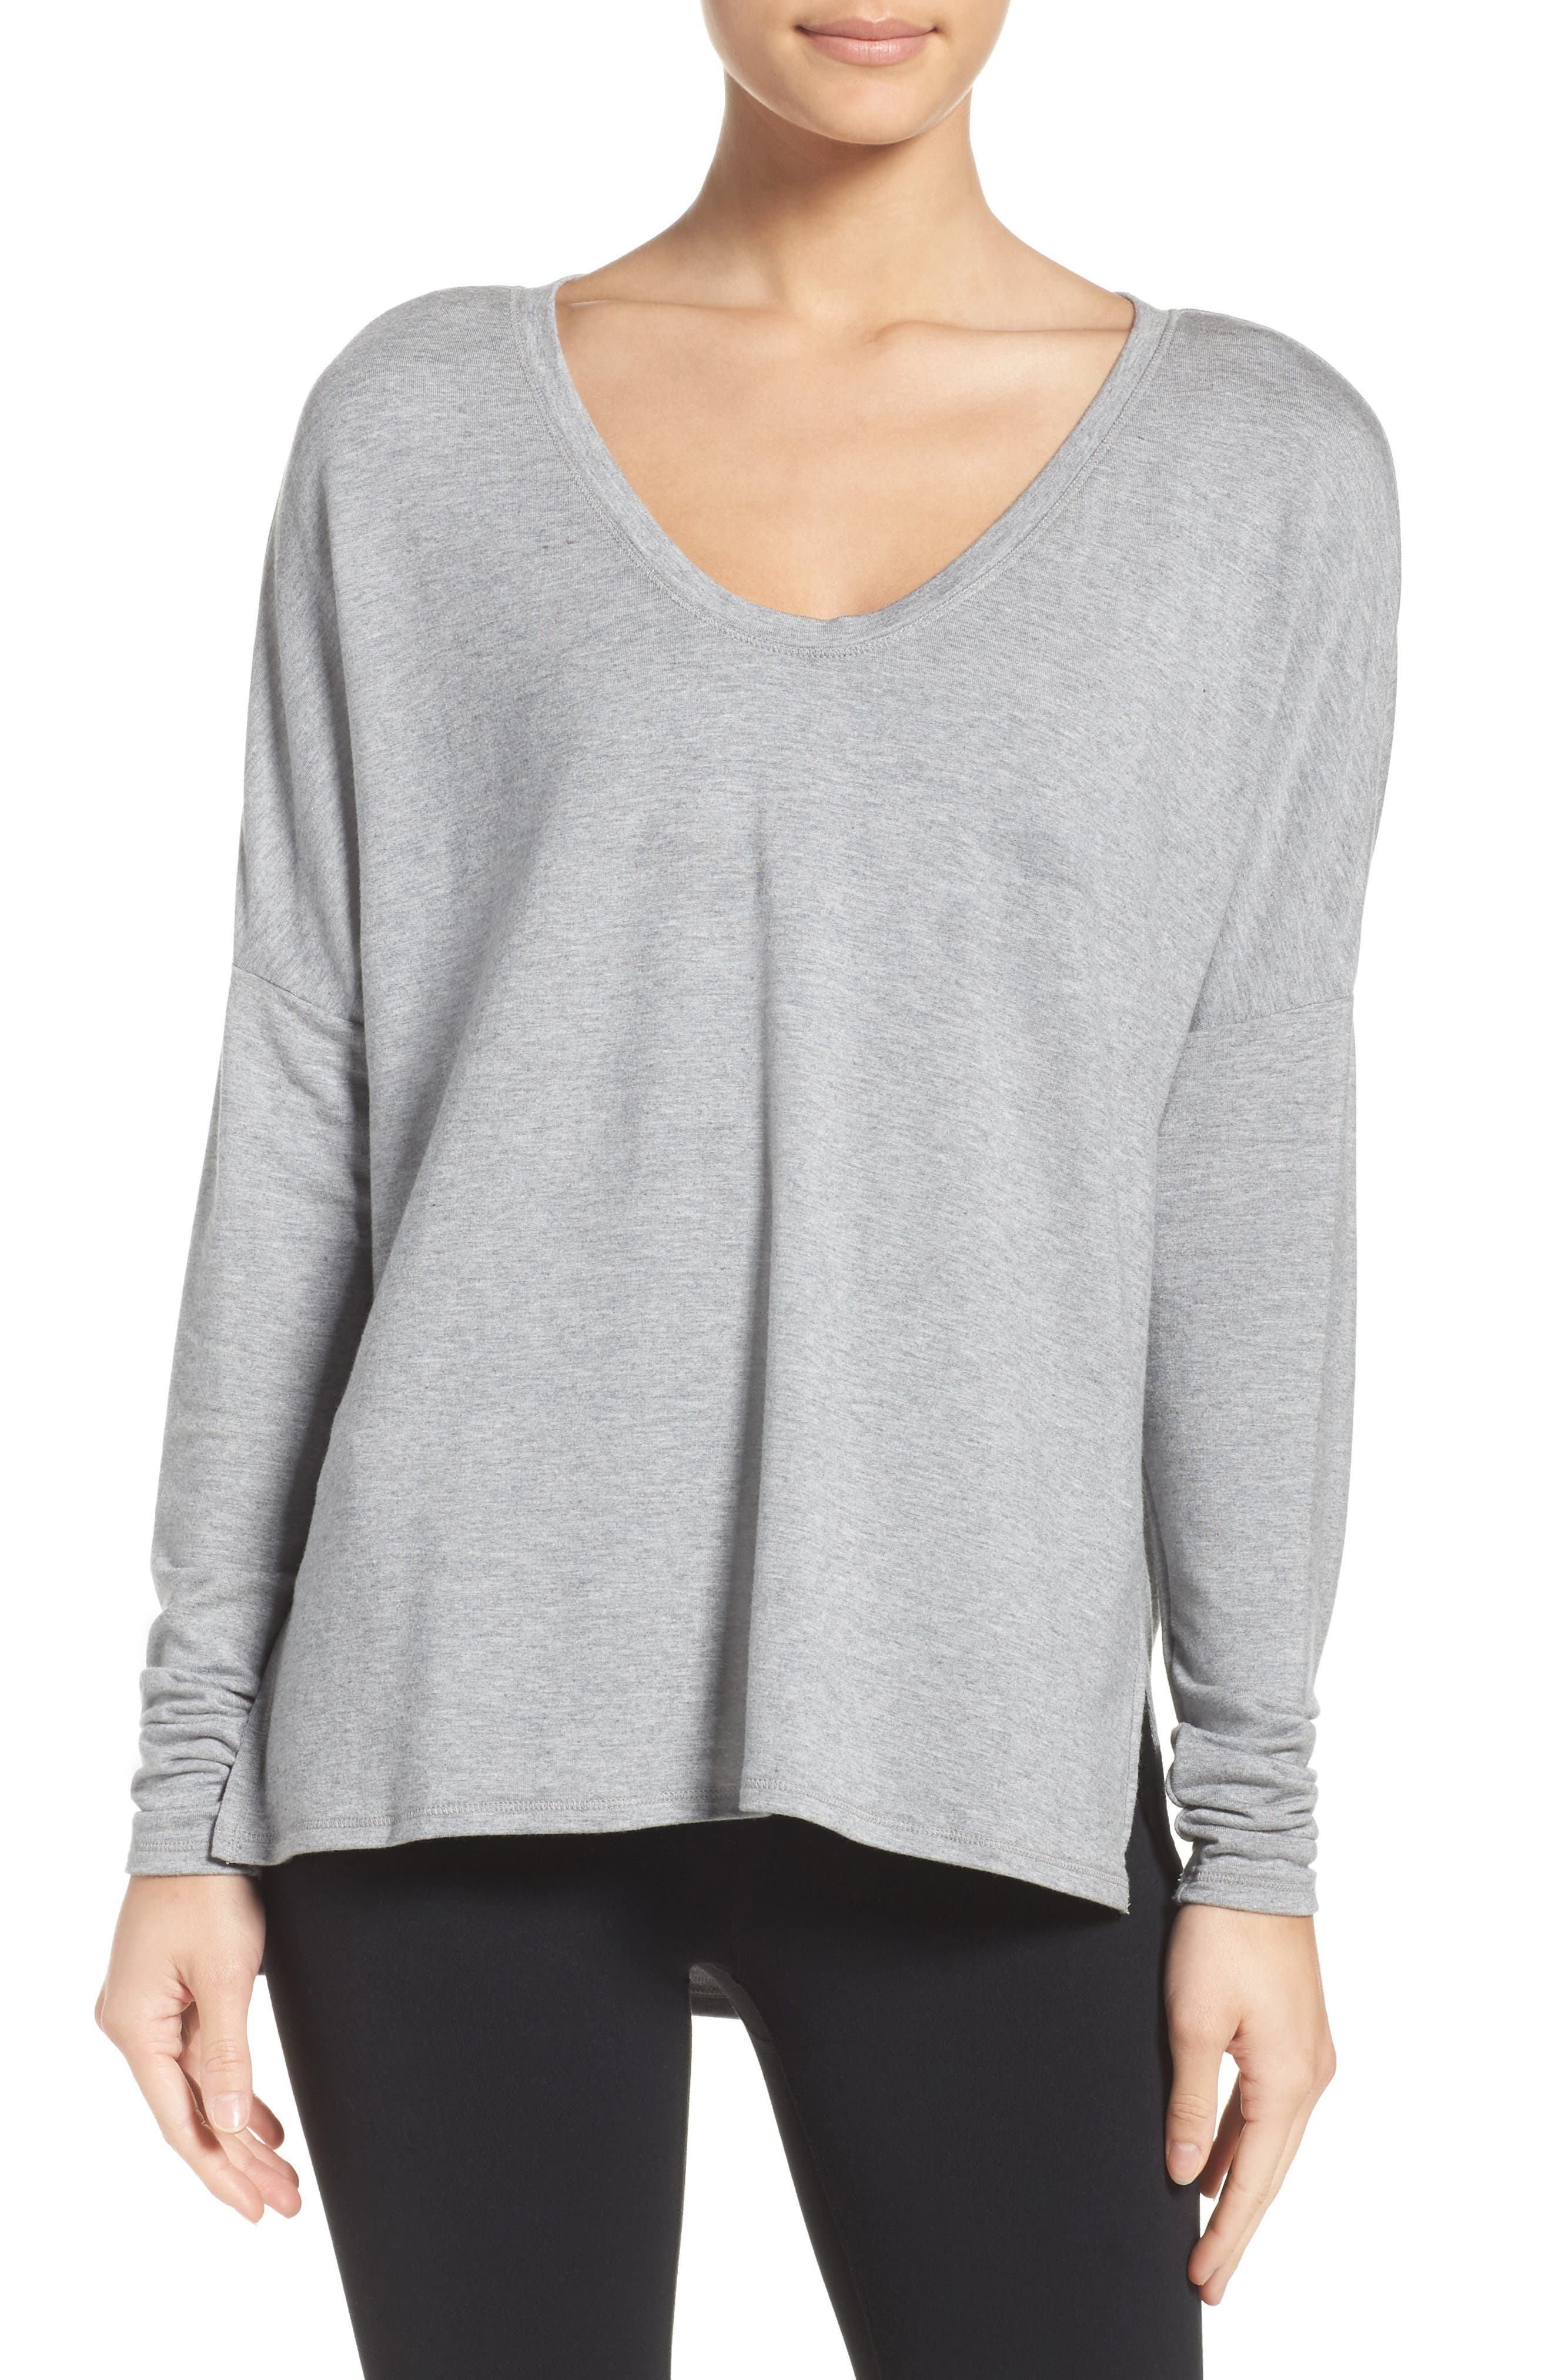 She's Cute Terry Pullover,                         Main,                         color, Grey Heather